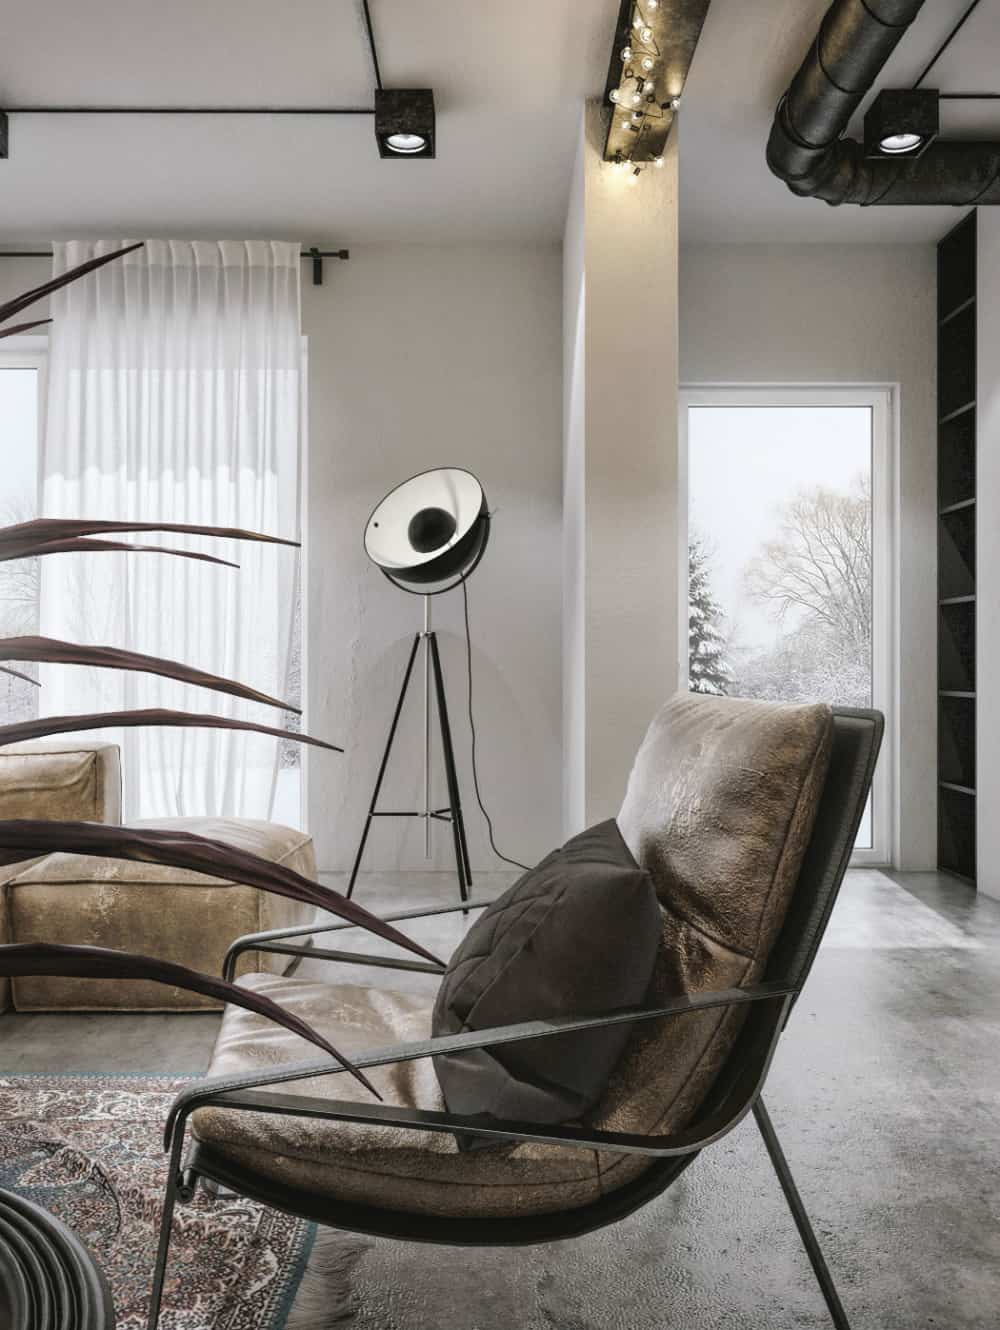 Polished industrial aesthetic with a touch of luxury